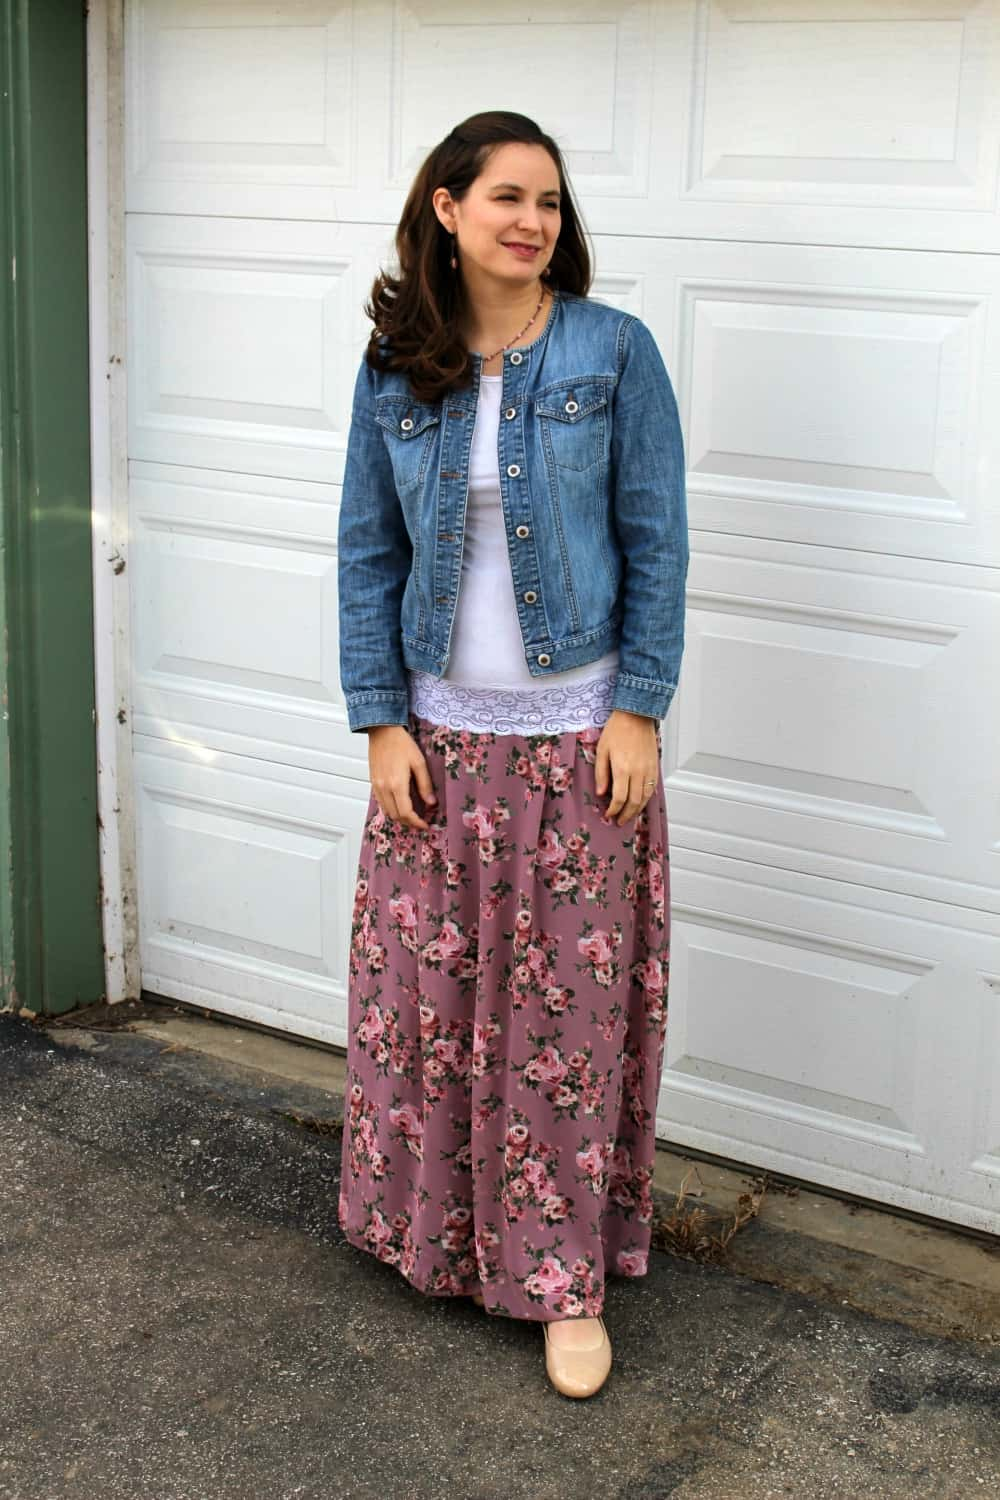 Rose colored maxi skirt with denim jacket